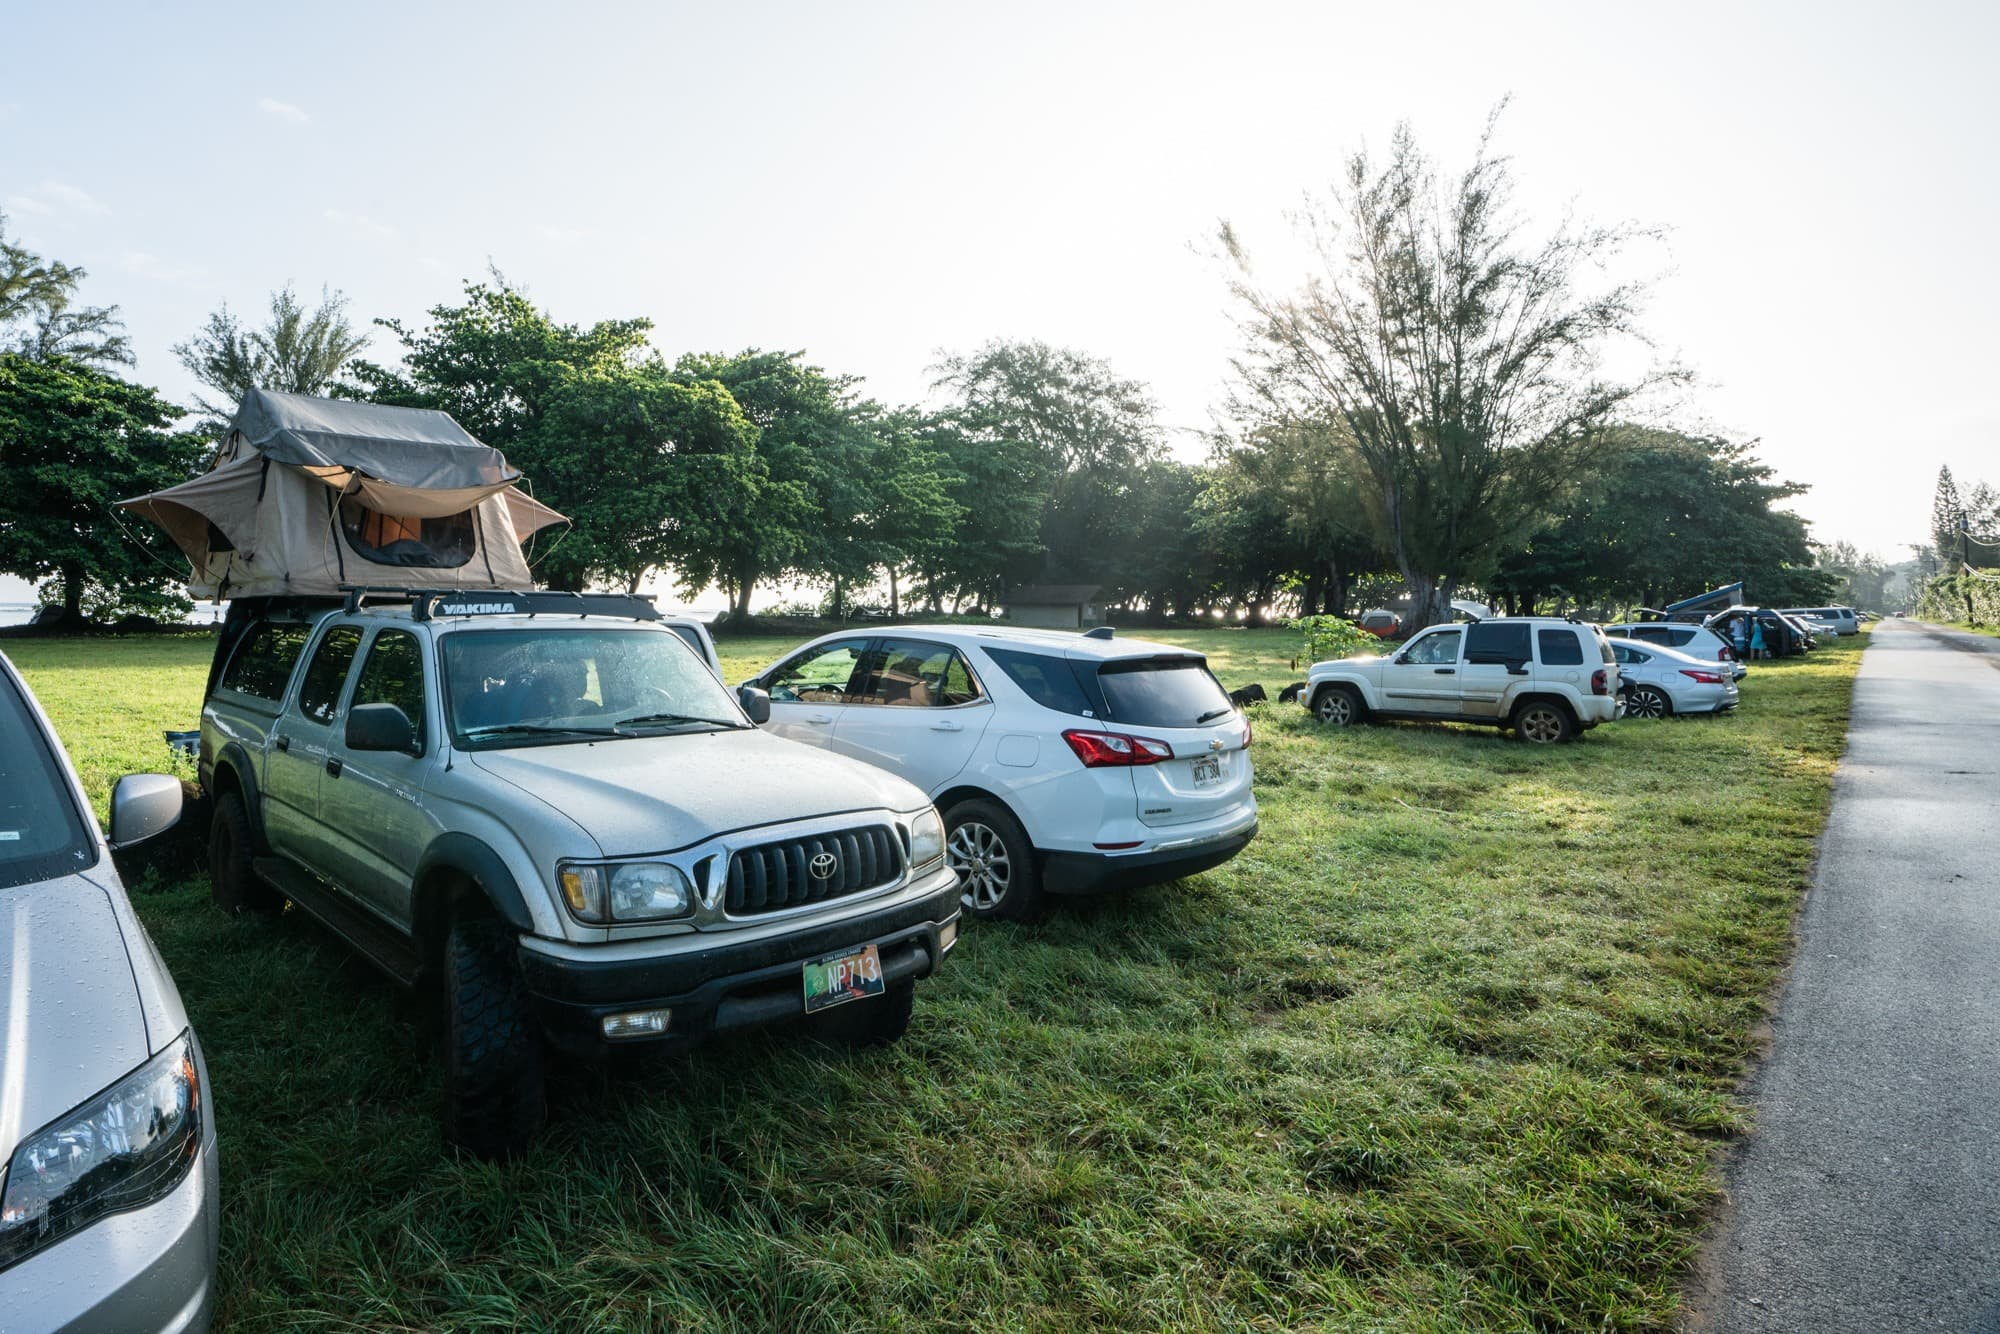 Camping at Anini Beach // Thinking about renting a 4x4 truck camper or VW-style campervan on Kauai? Read about my vanlife experiences during a recent Kauai vacation. Learn the beach campgrounds where it is legal to sleep in your car, and see if renting campervan is the right choice for your Kauai adventures.